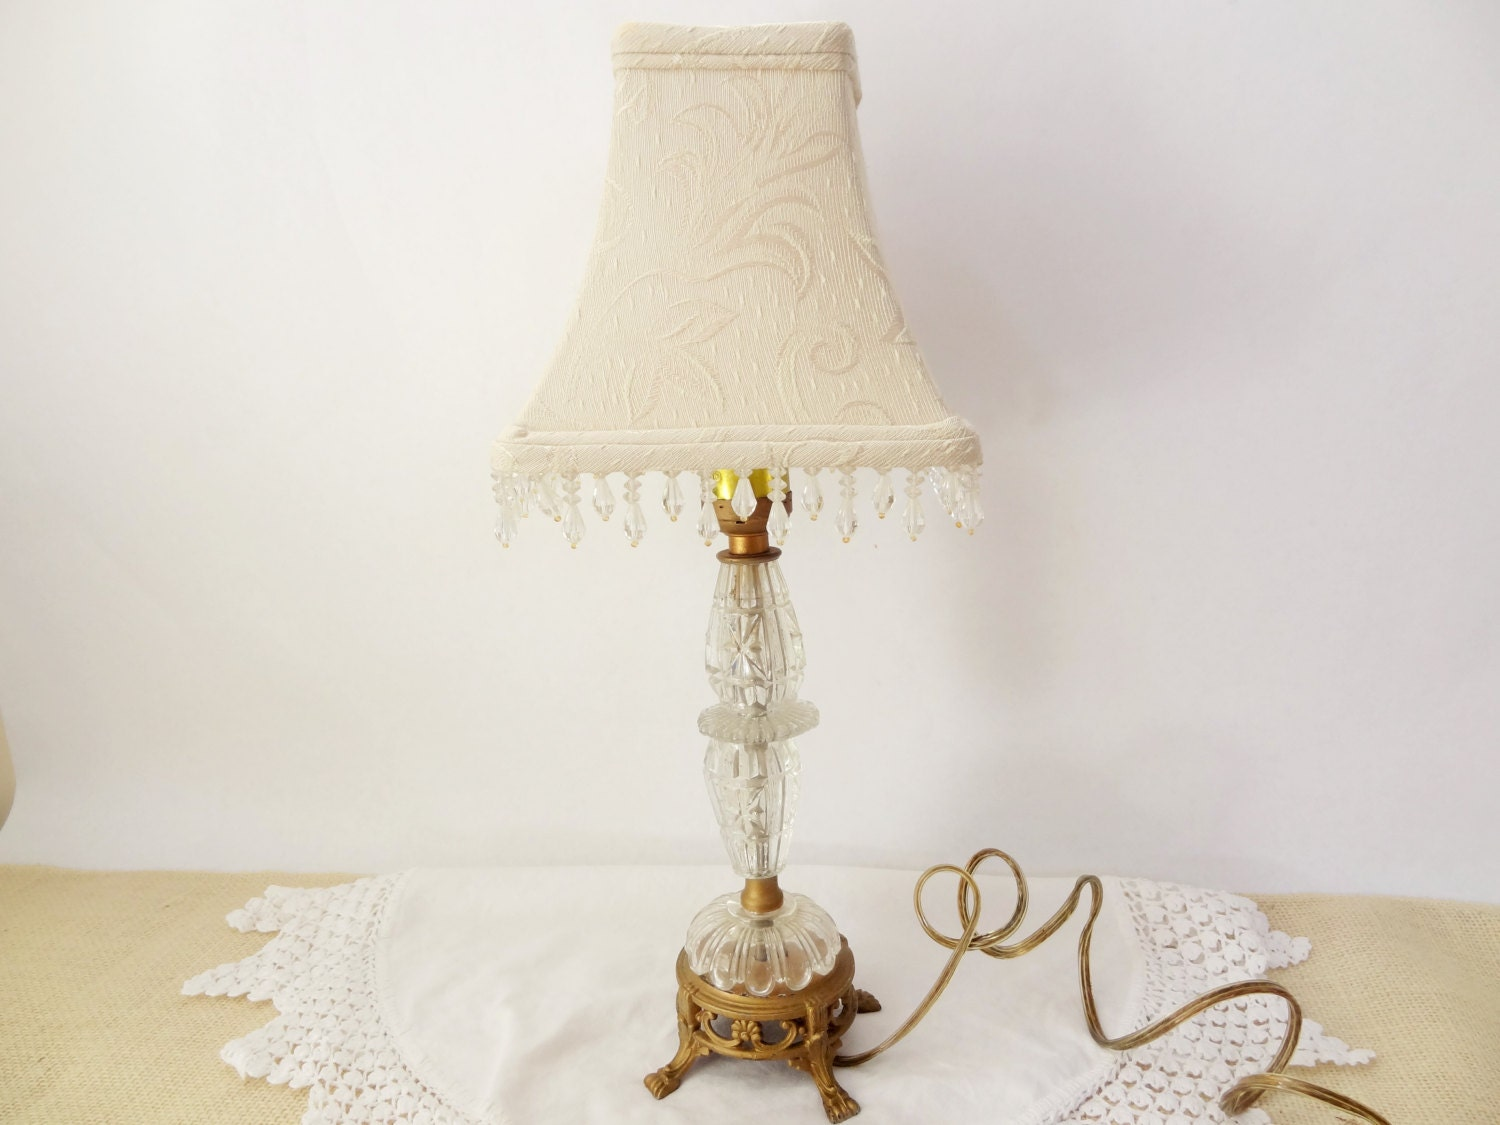 vintage table lamp shabby chic decor light fixture lighting. Black Bedroom Furniture Sets. Home Design Ideas